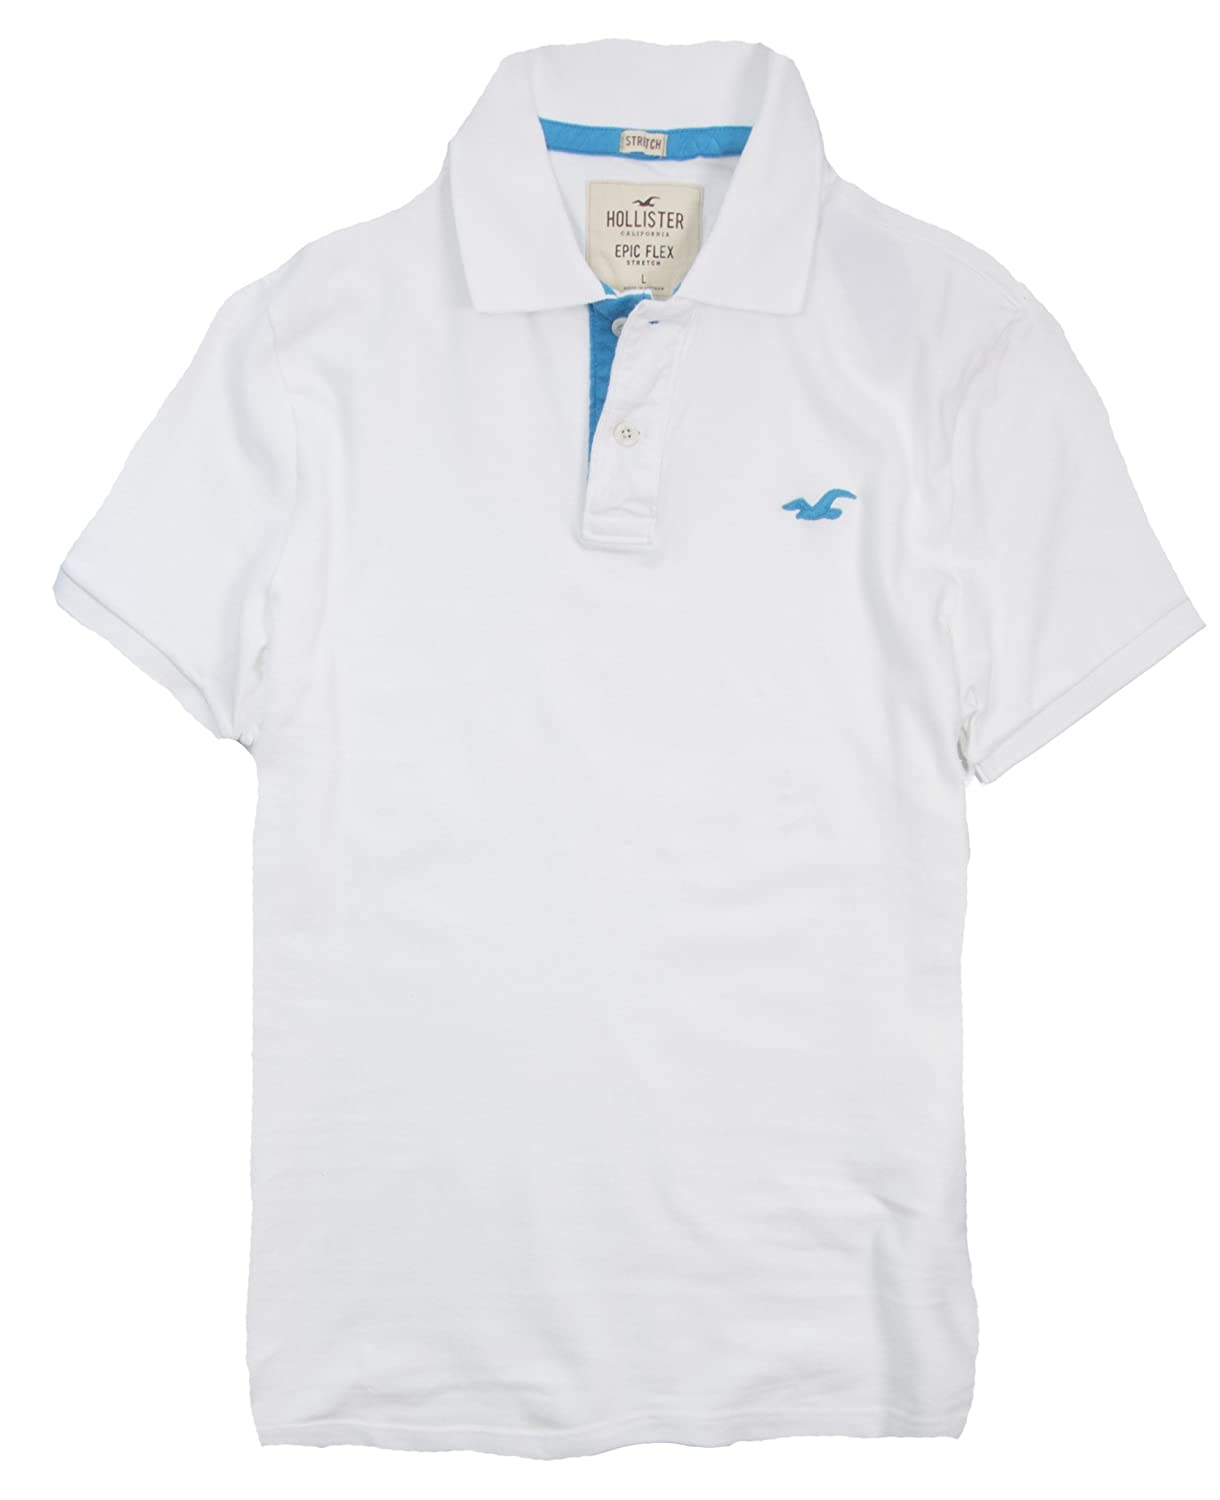 c8d9c46e3 Hollister Men's Polo Shirt T Shirt at Amazon Men's Clothing store: